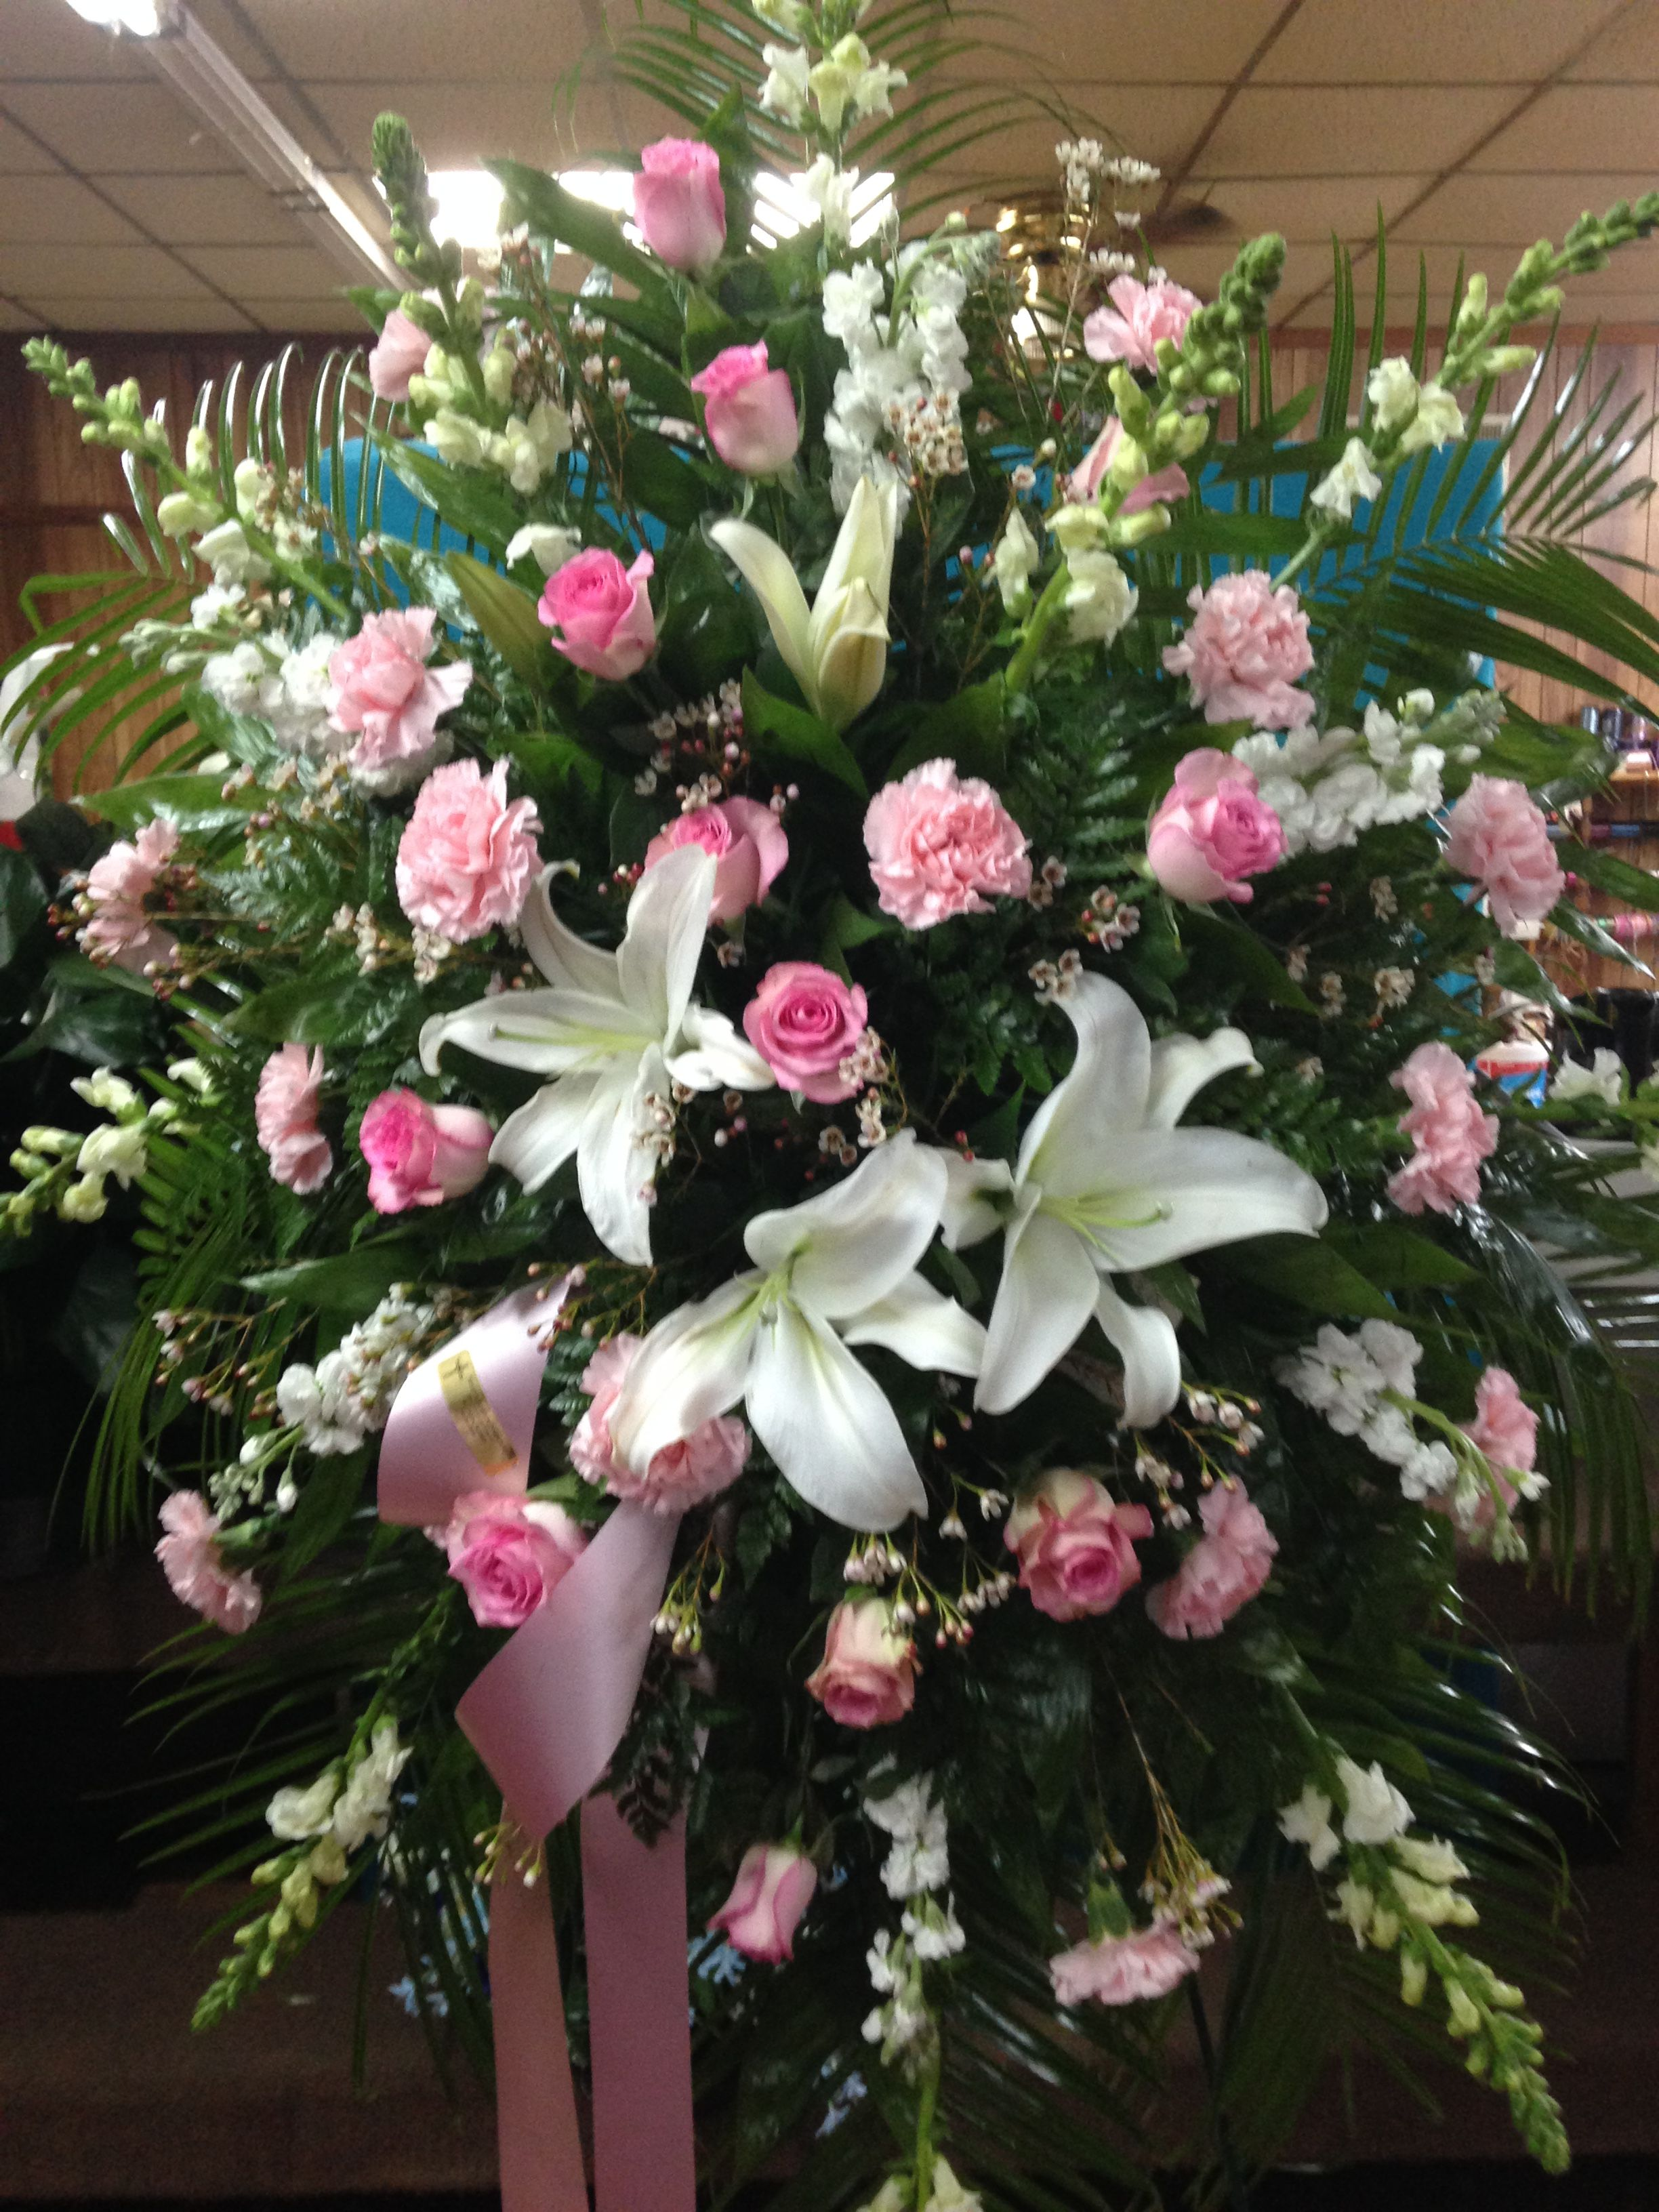 Fresh Funeral Spray Using White Lilies White Stock White Snapdragons Pink Roses Pink Carnations And Pink Wax Fl Flowers For You Funeral Sprays Wax Flowers